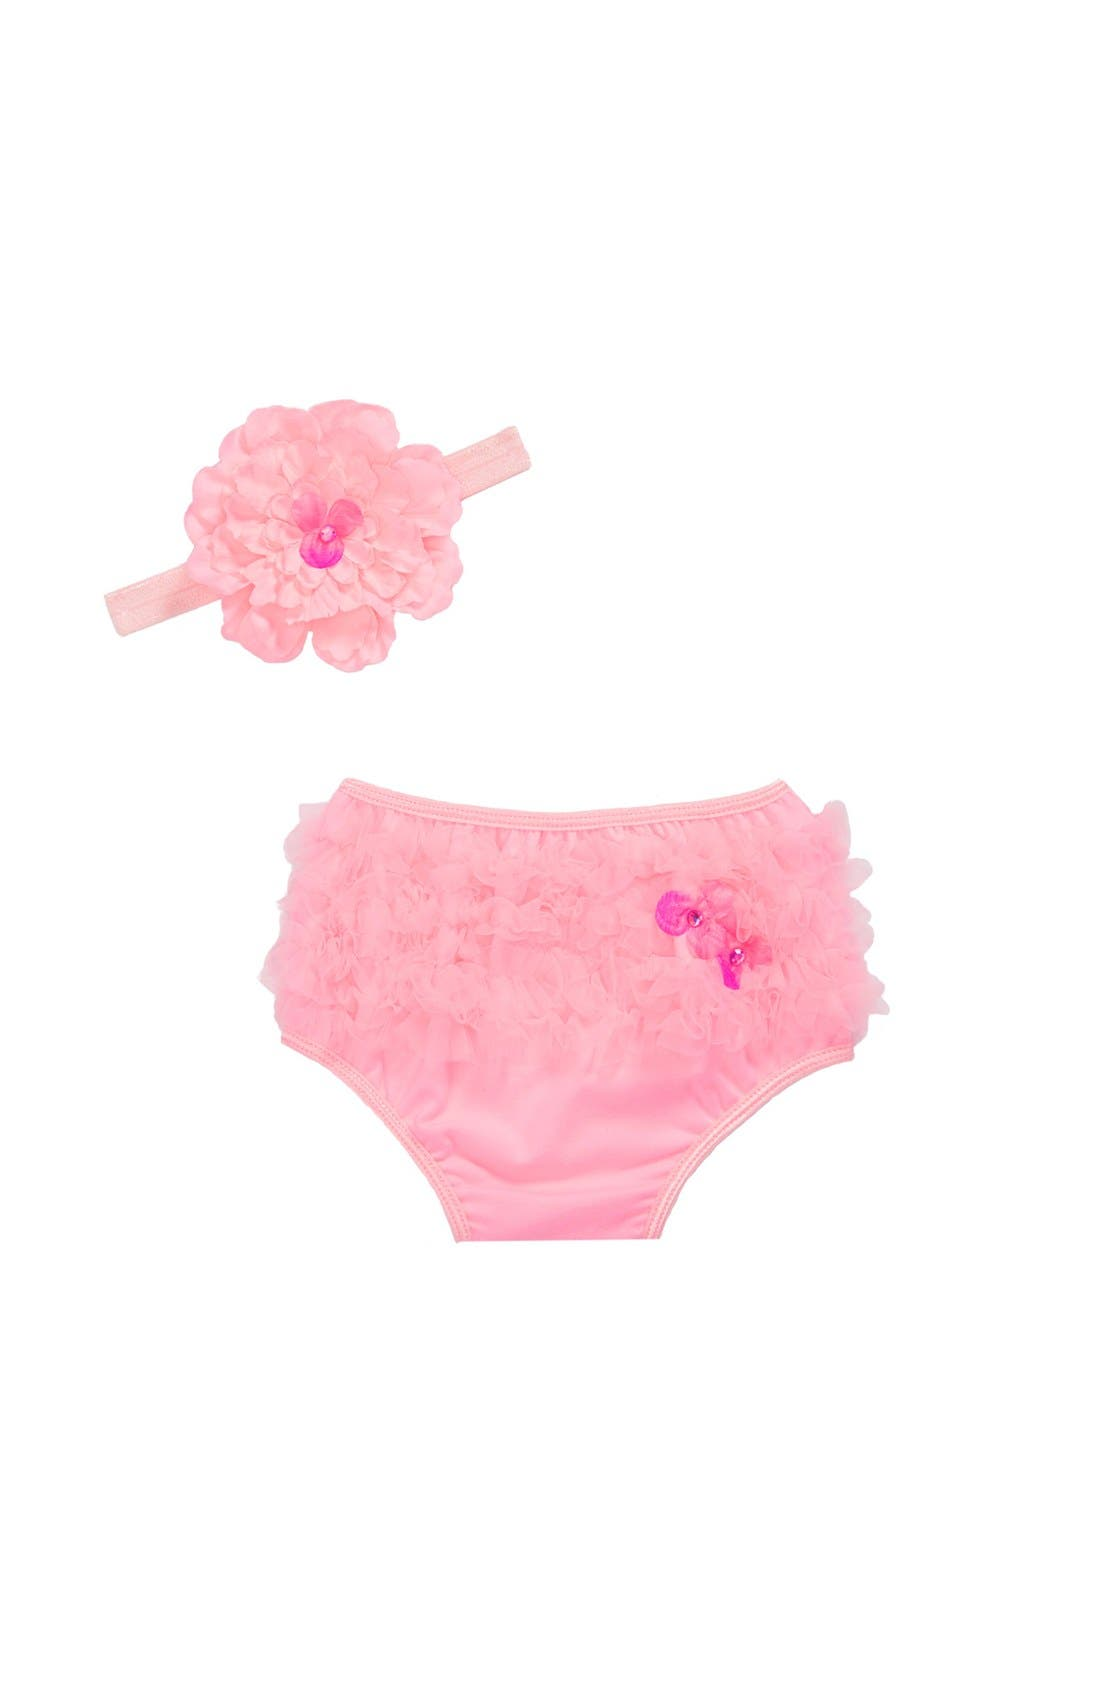 Alternate Image 1 Selected - PLH Bows & Laces Ruffle Diaper Cover & Headband Set (Infant)